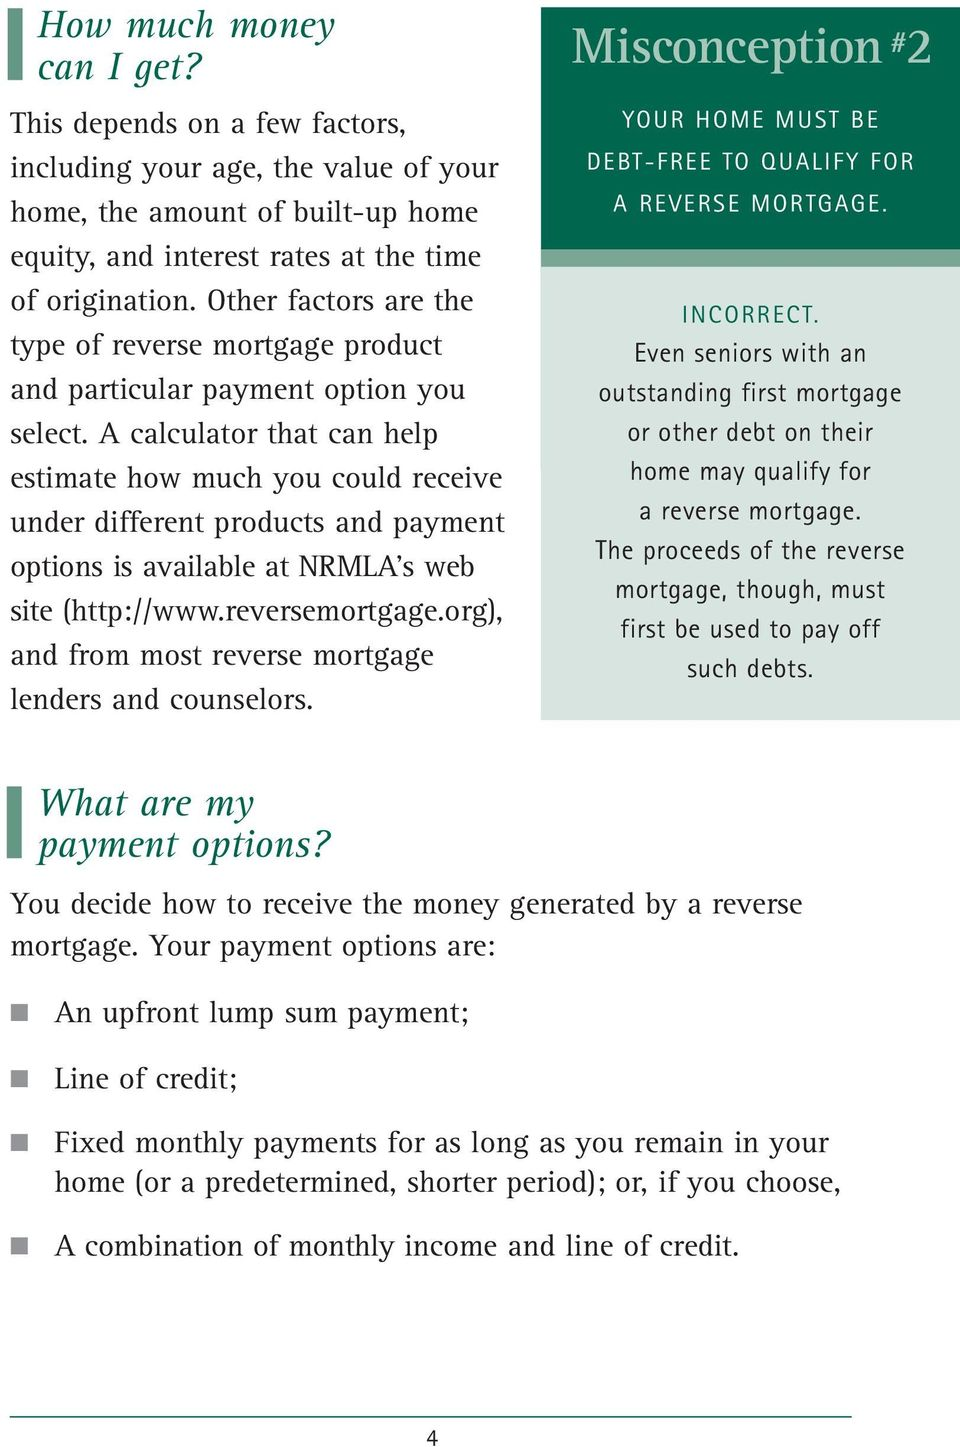 A calculator that can help estimate how much you could receive under different products and payment options is available at NRMLA s web site (http://www.reversemortgage.